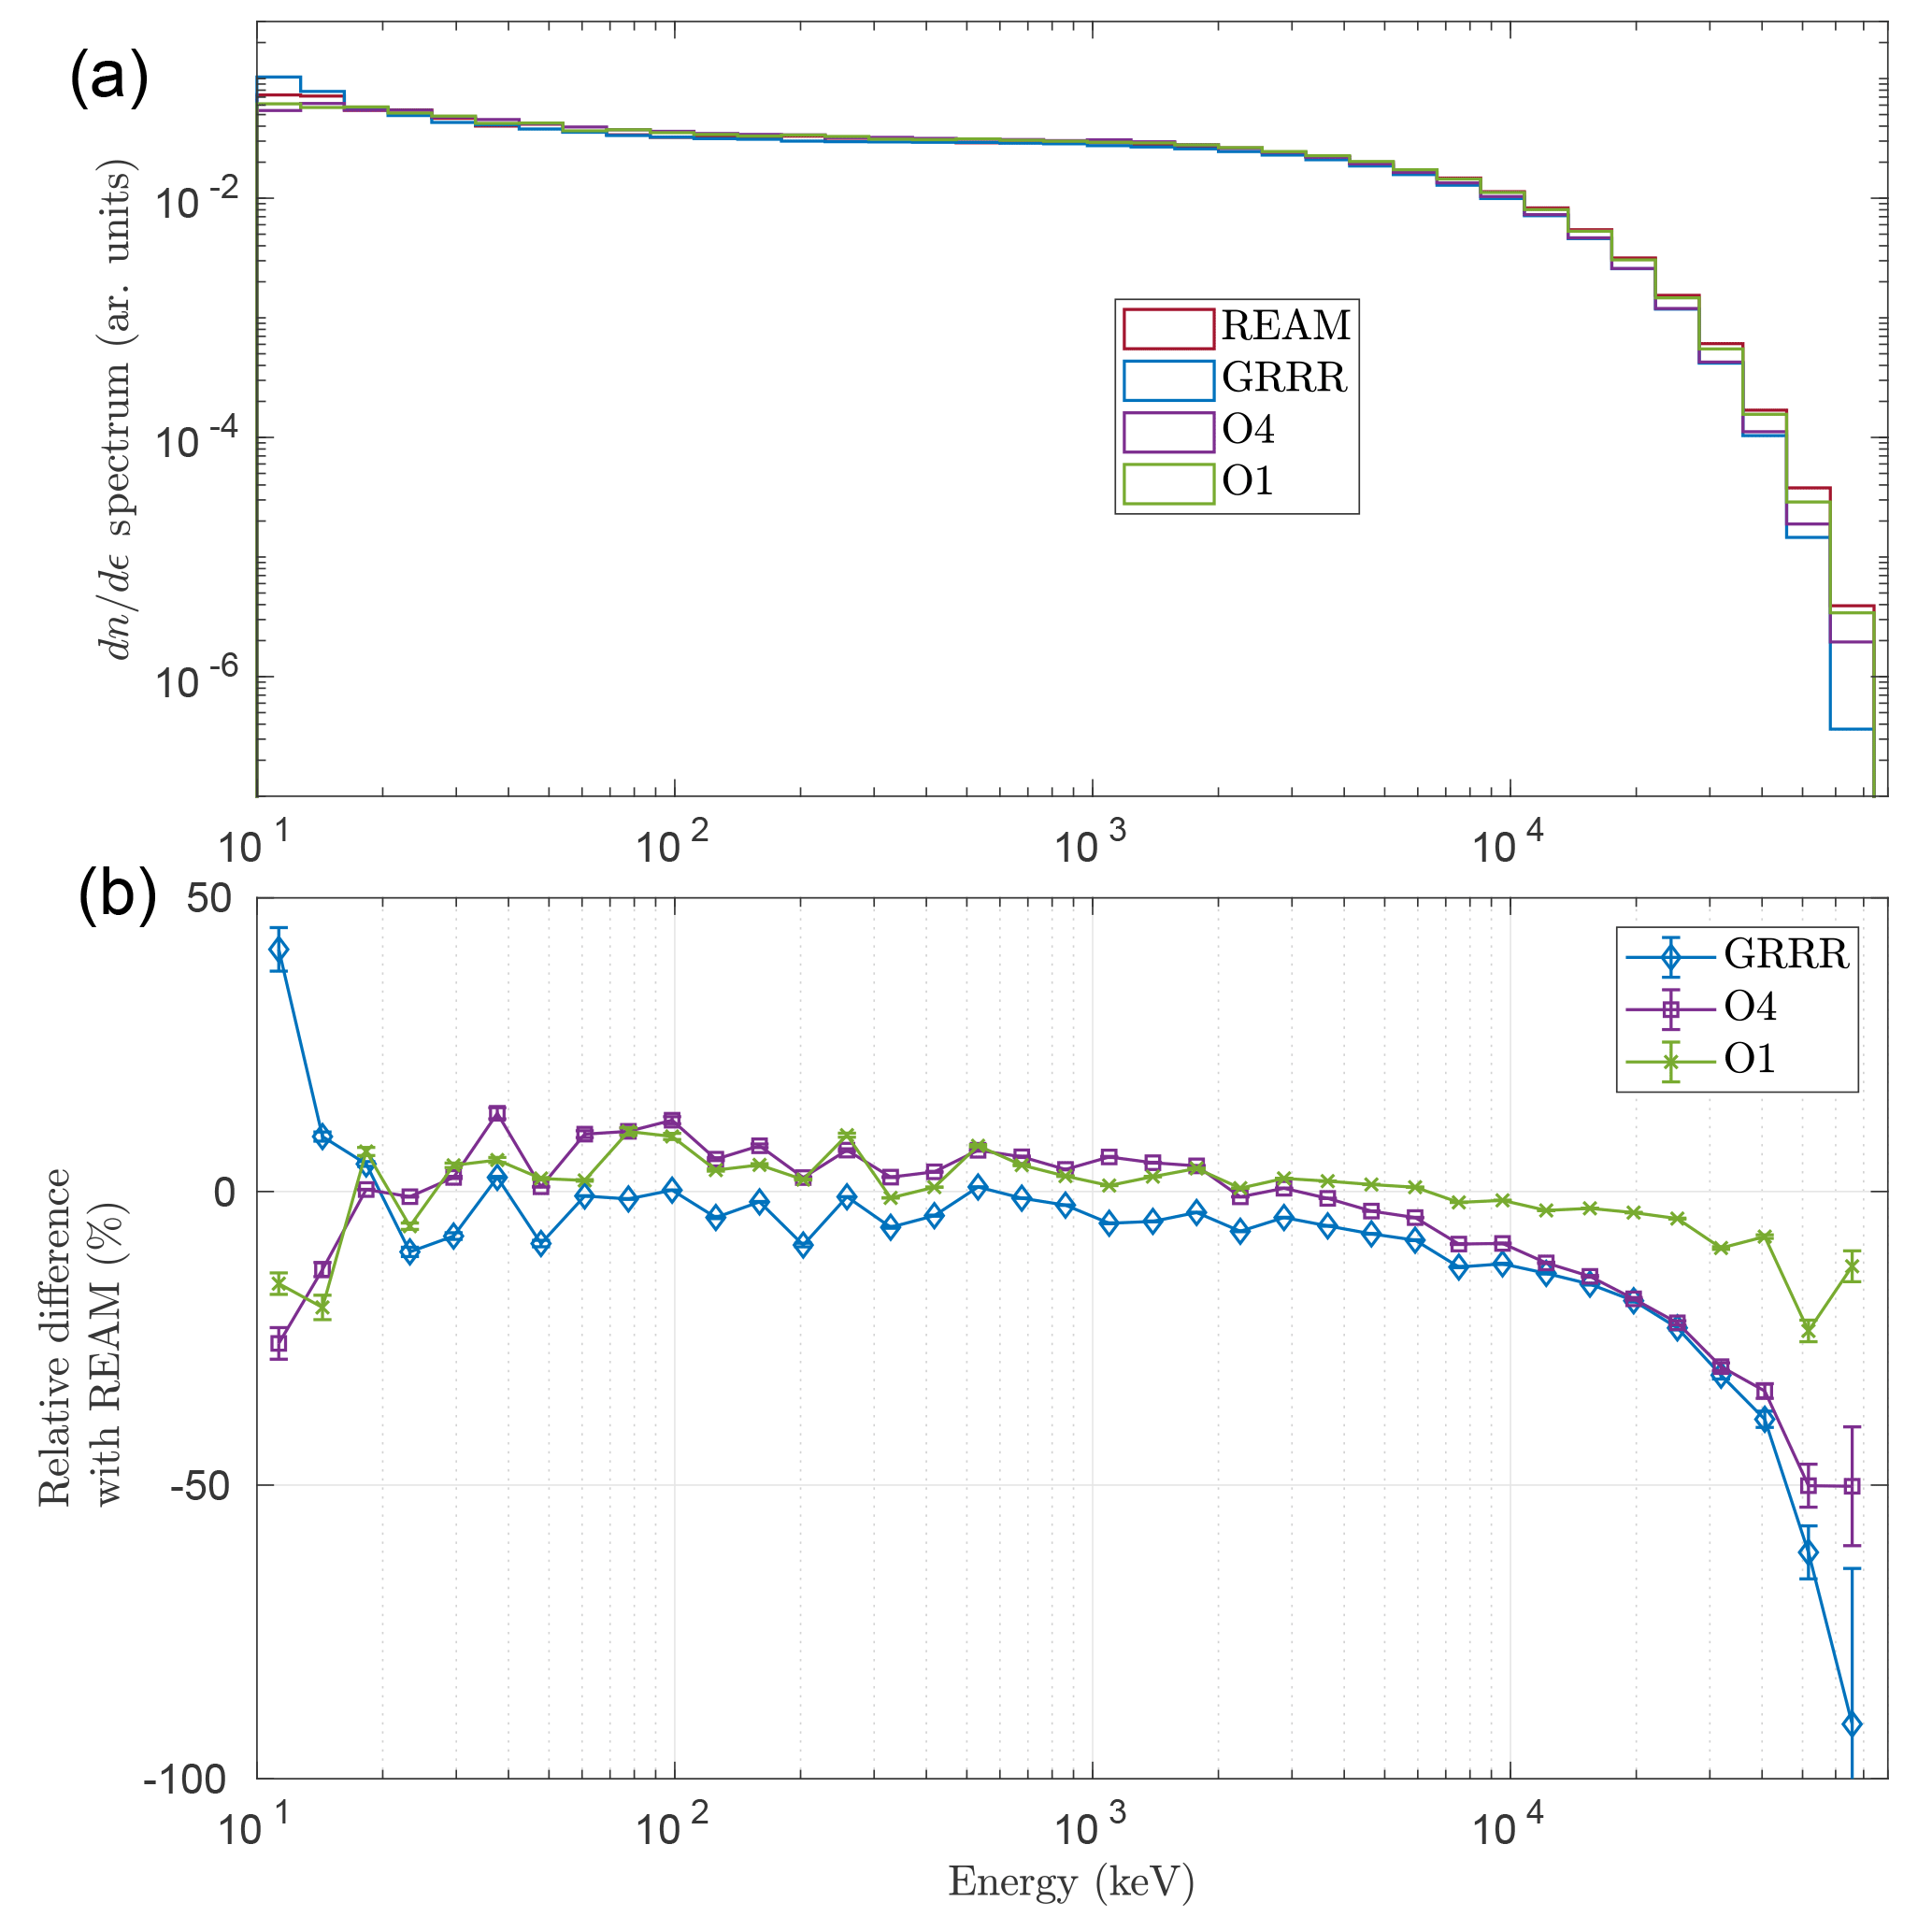 GMD - Evaluation of Monte Carlo tools for high-energy